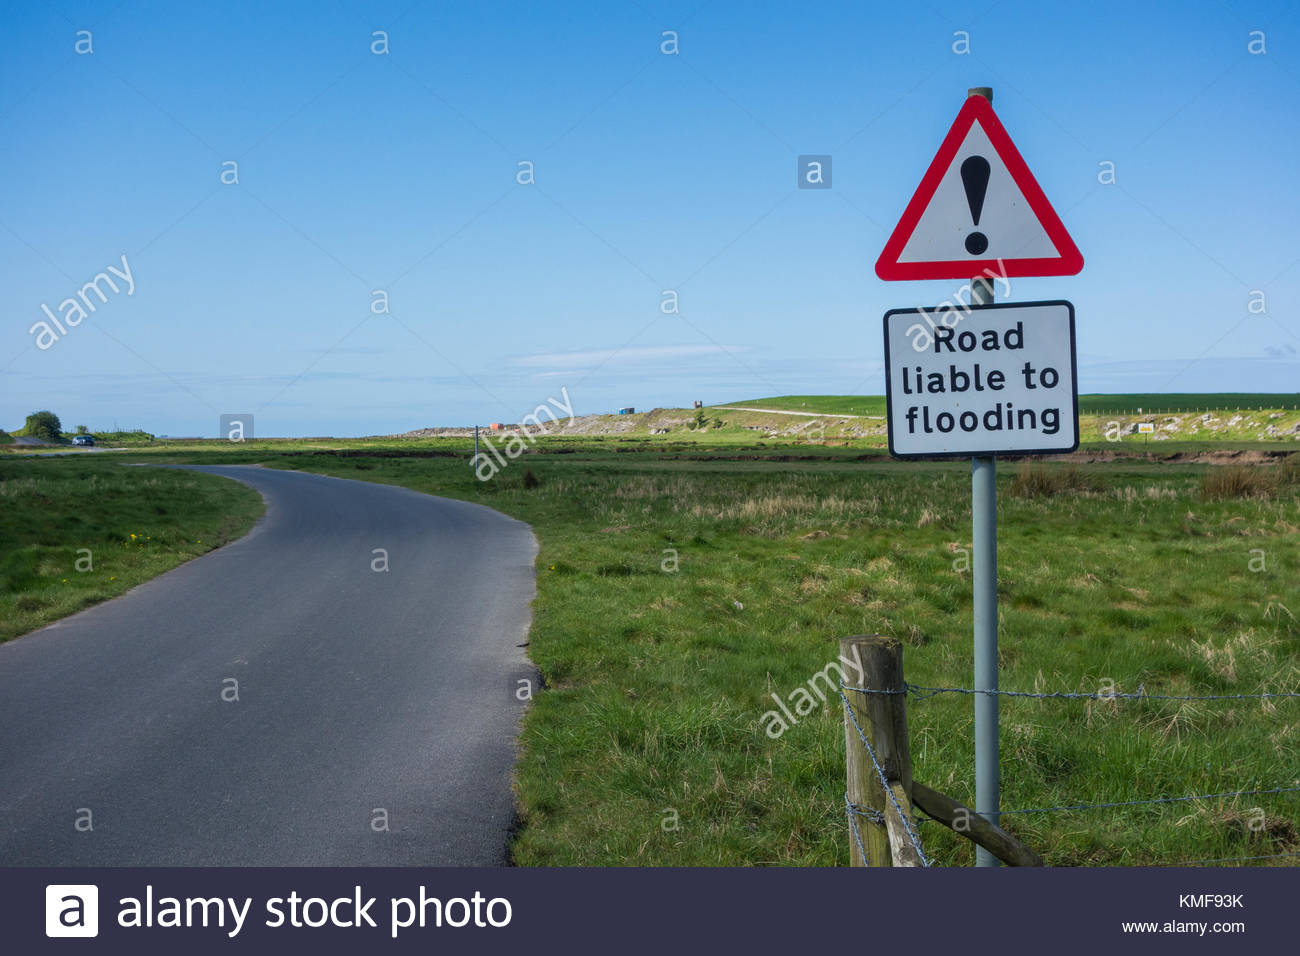 A warning sign indicating that the road is liable to flloding at high tide, on marshland near to Carnforth on the Stock Photo